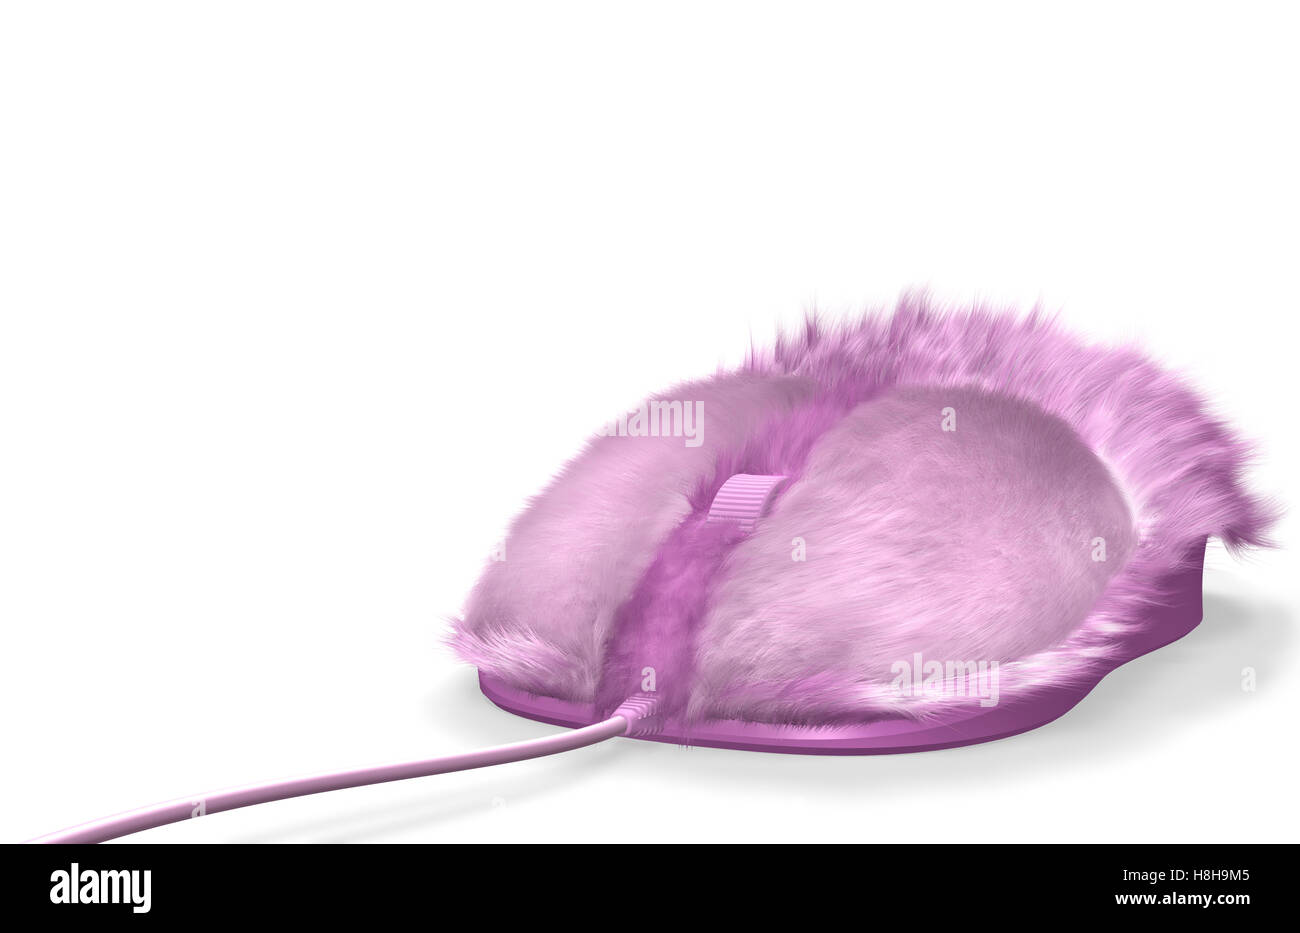 Pink furry computer mouse - Stock Image